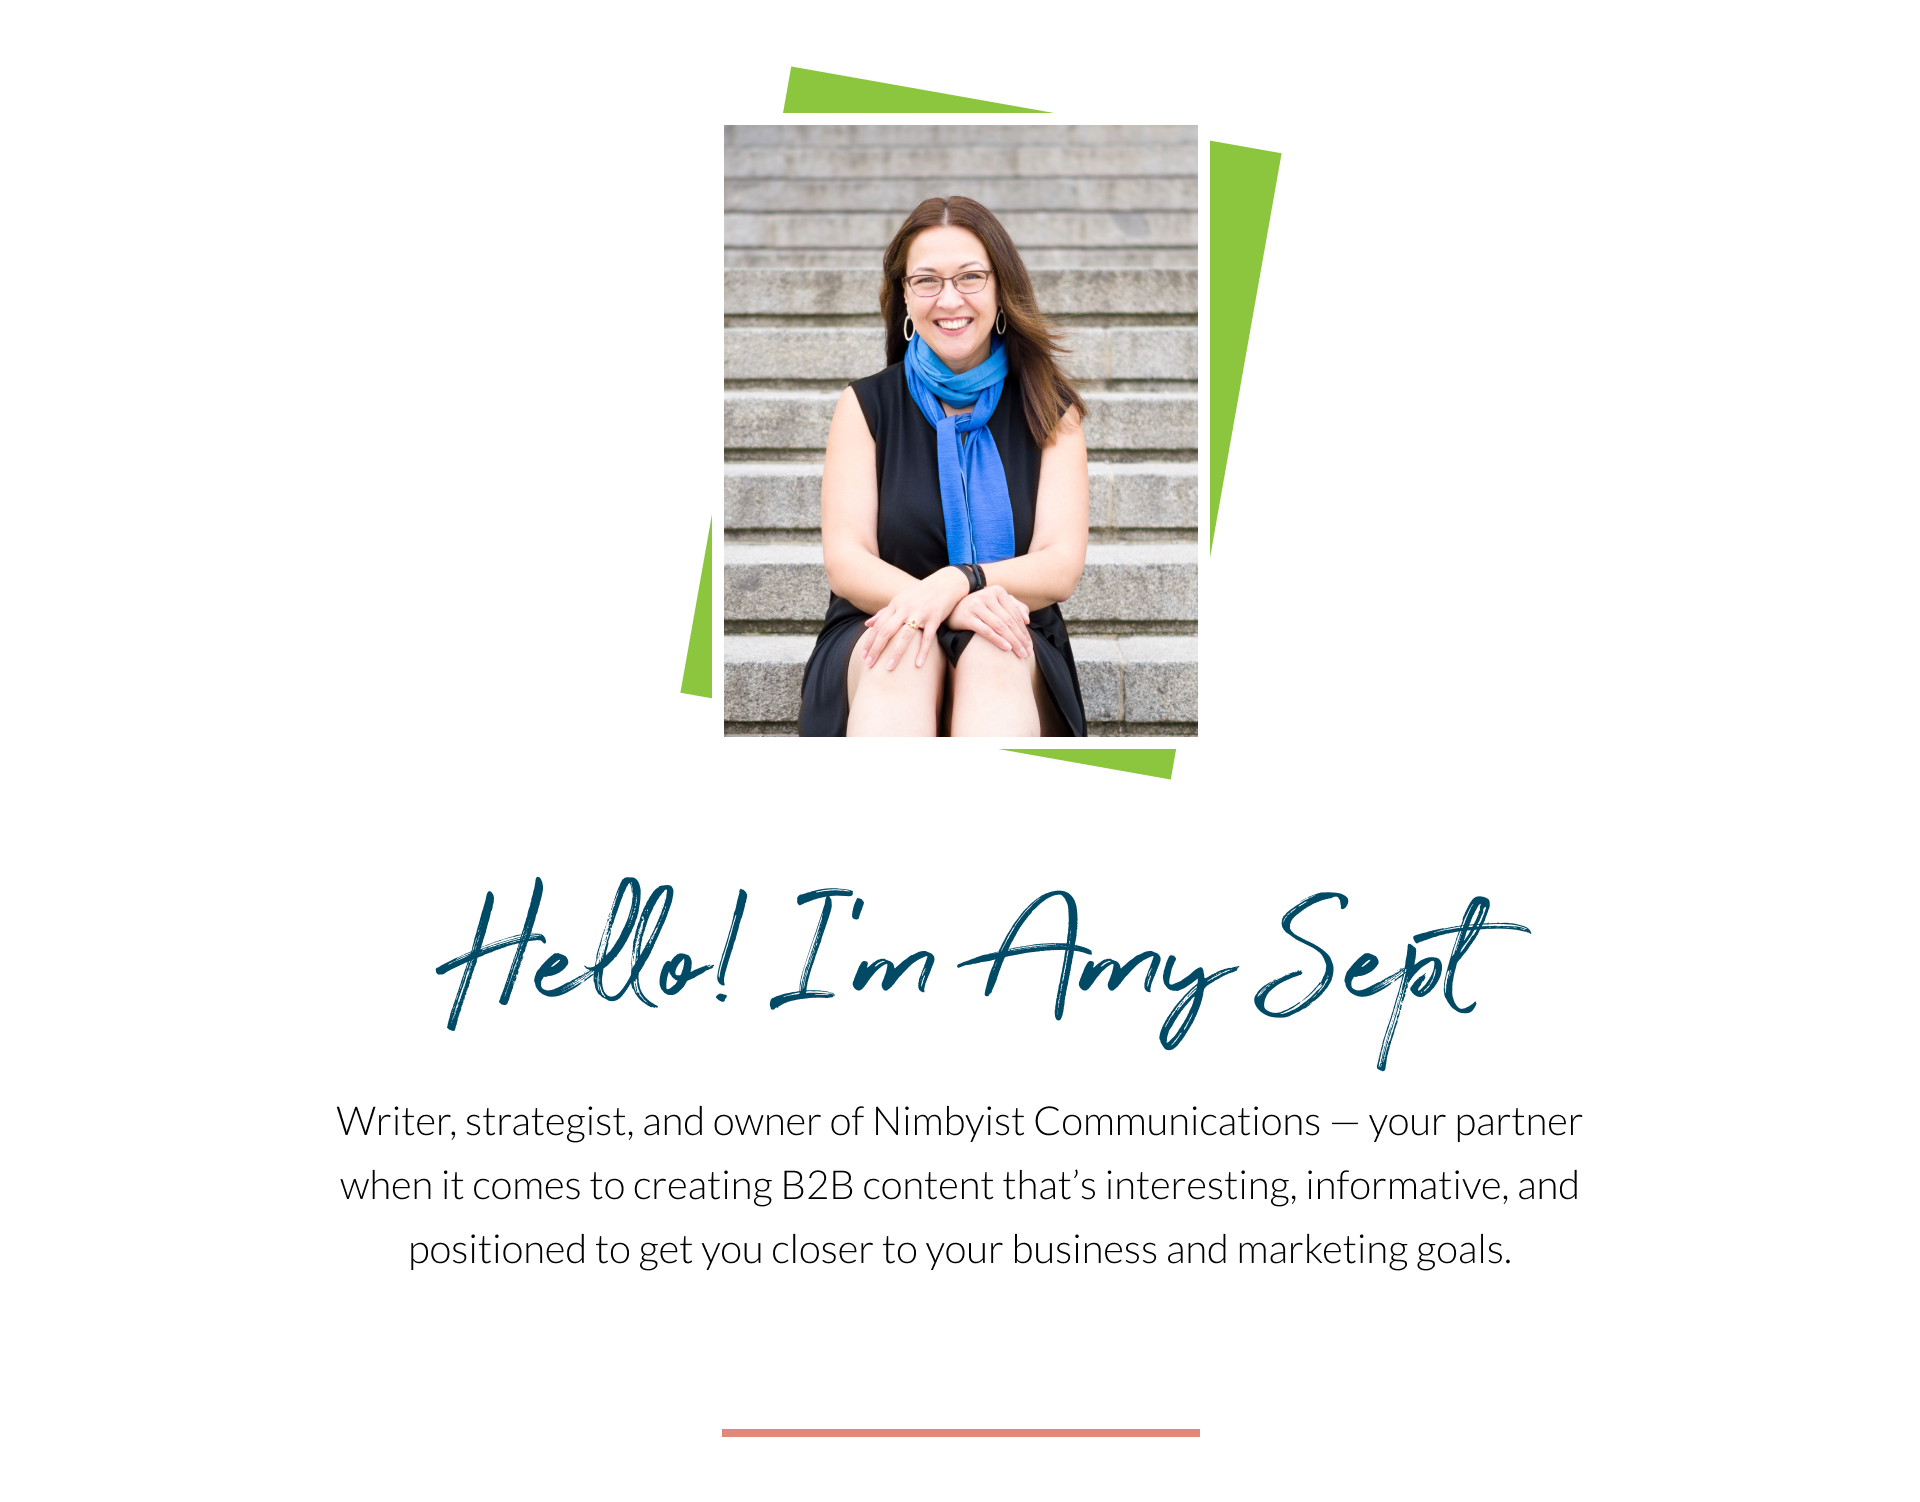 Writer, strategist, and owner of Nimbyist Communications—your partner when it comes to creating B2B content that's interesting, informative, and positioned to get you closer to your business and marketing goals.